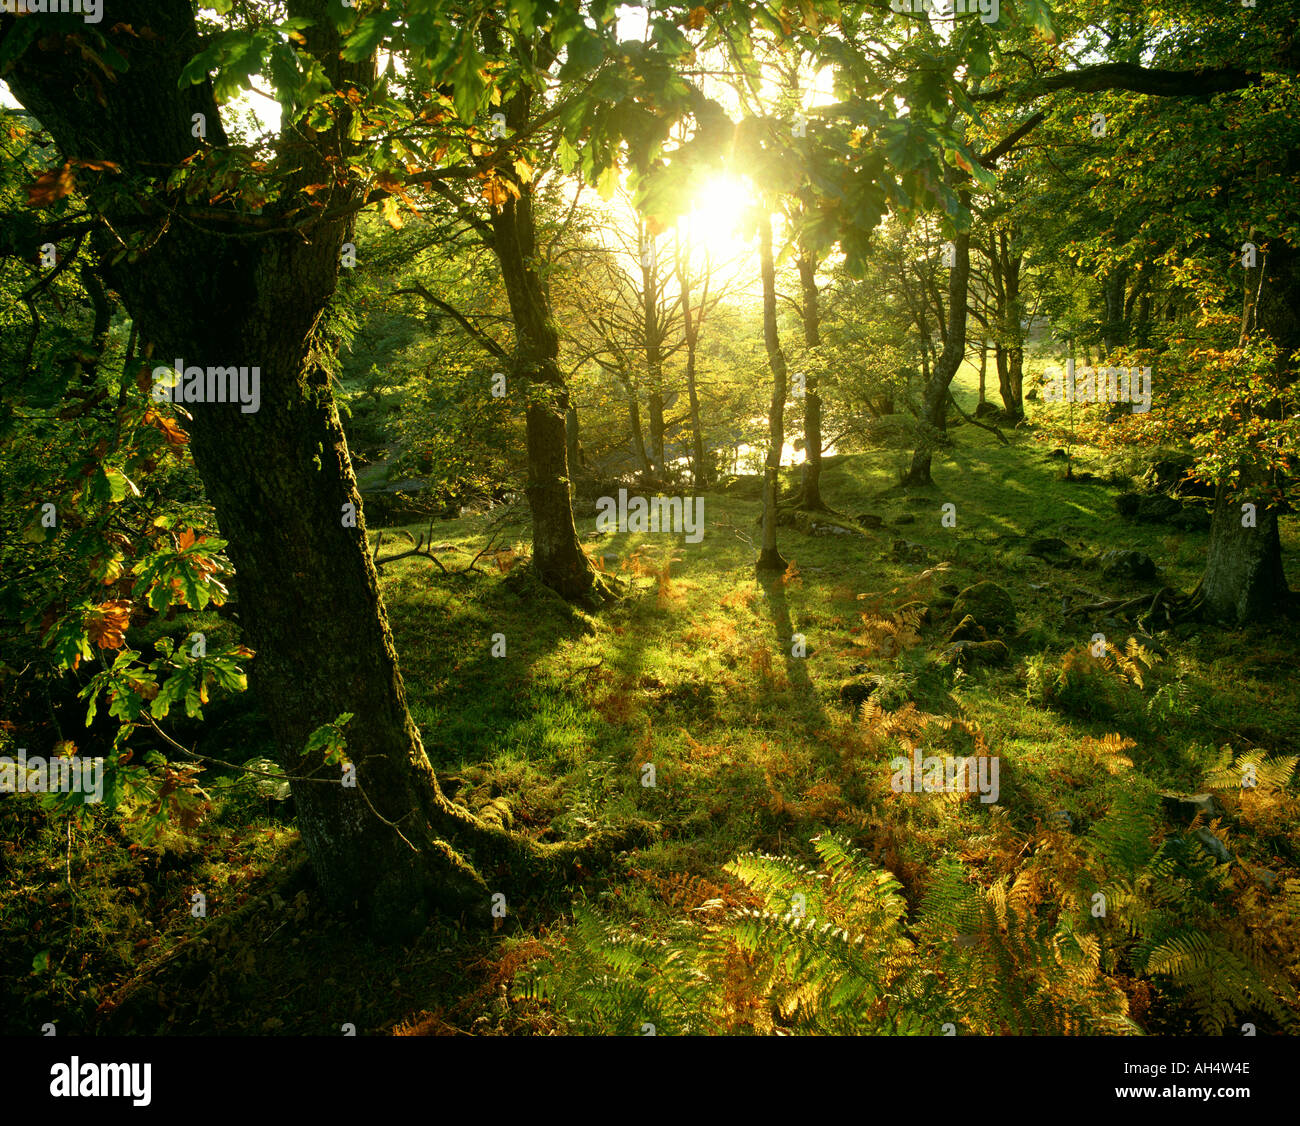 Gb - Pays de Galles : le parc national de Snowdonia forest Photo Stock